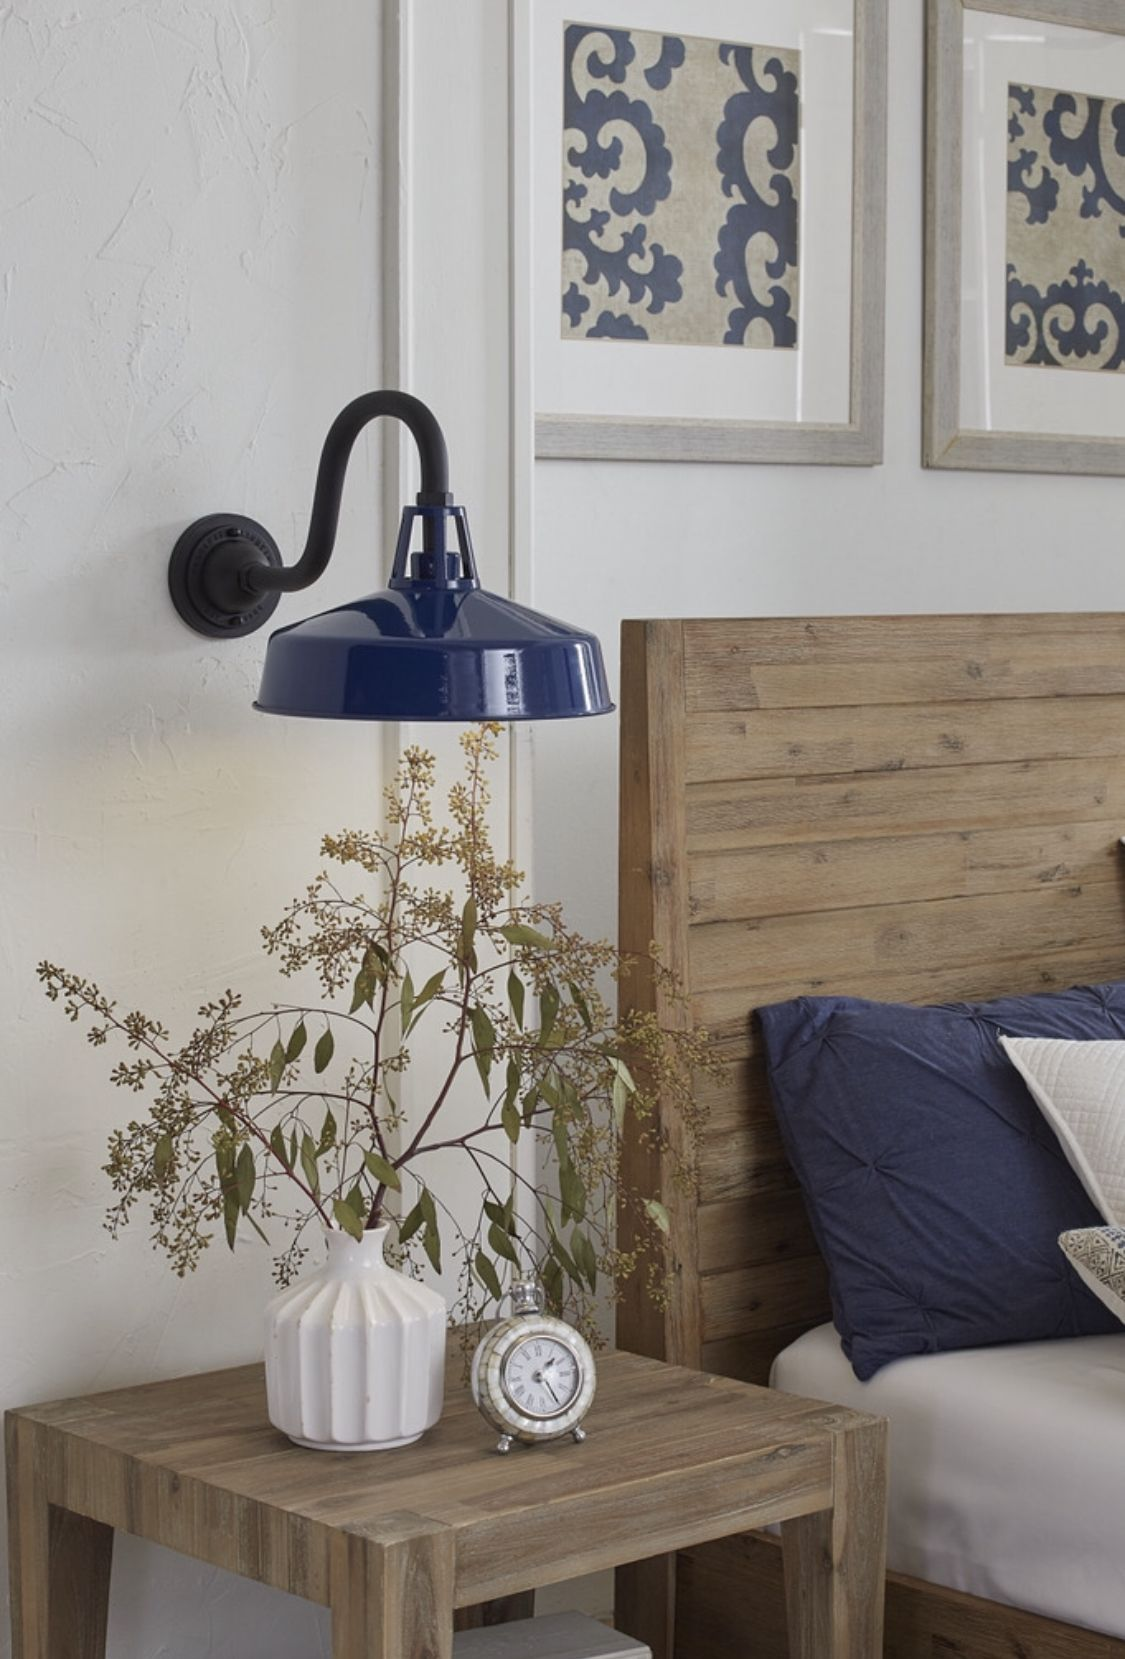 Modern Farmhouse Style Complimented By Navy Blue Wall Lanterns For Indoor Ou Modern Farmhouse Style Bedroom Modern Farmhouse Style Farmhouse Style Decorating #navy #blue #farmhouse #living #room